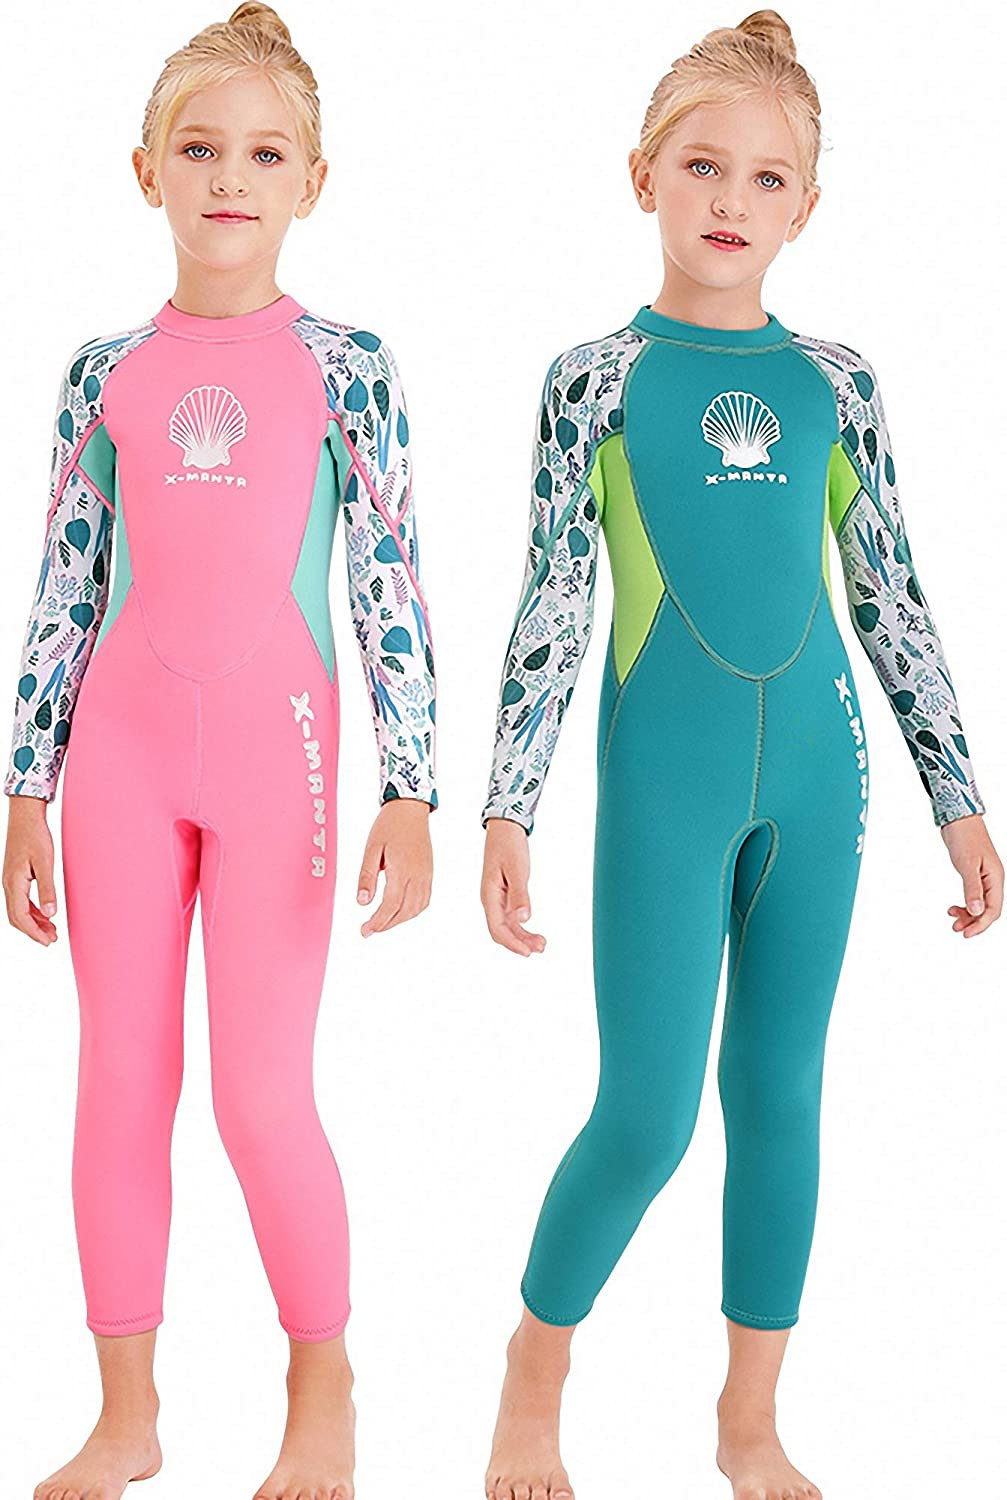 Surfing Diving MWTA Wetsuit for Kids Boys Girls 2.5mm Neoprene Thermal Swimsuit Fullsuit Wet Suits Long Sleeve for Toddler Child Junior Youth Swimming